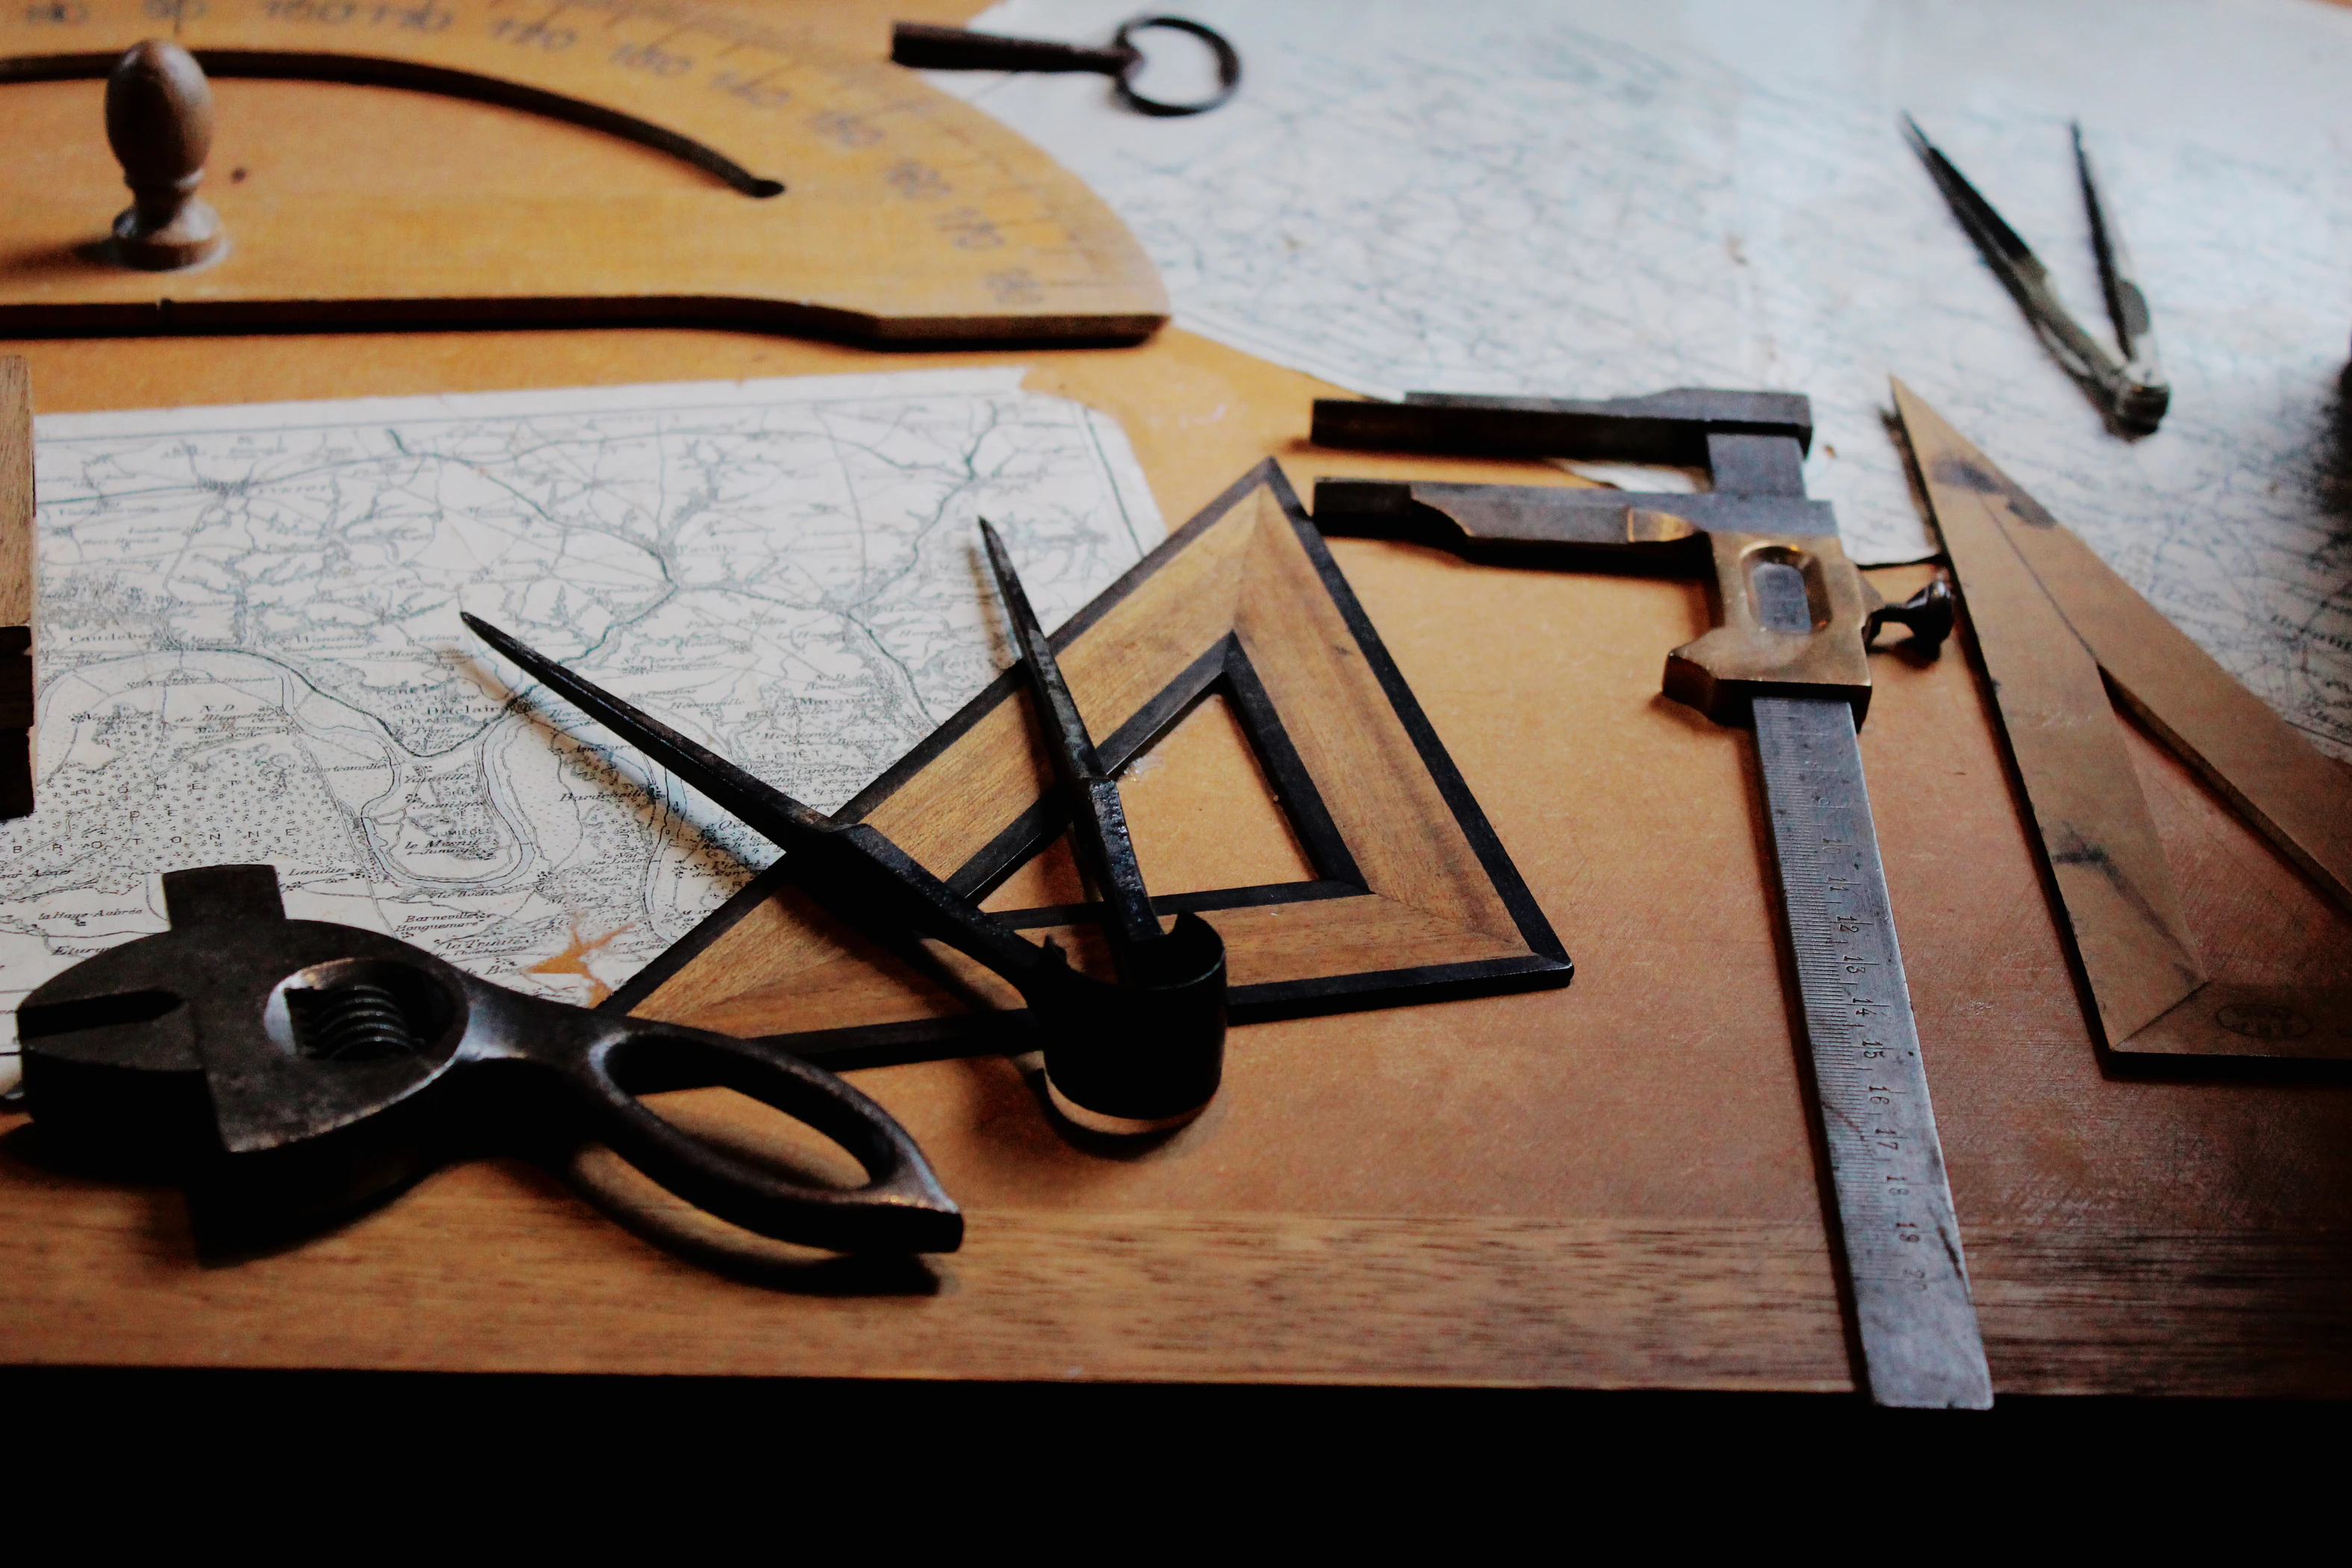 Building tools on a desk